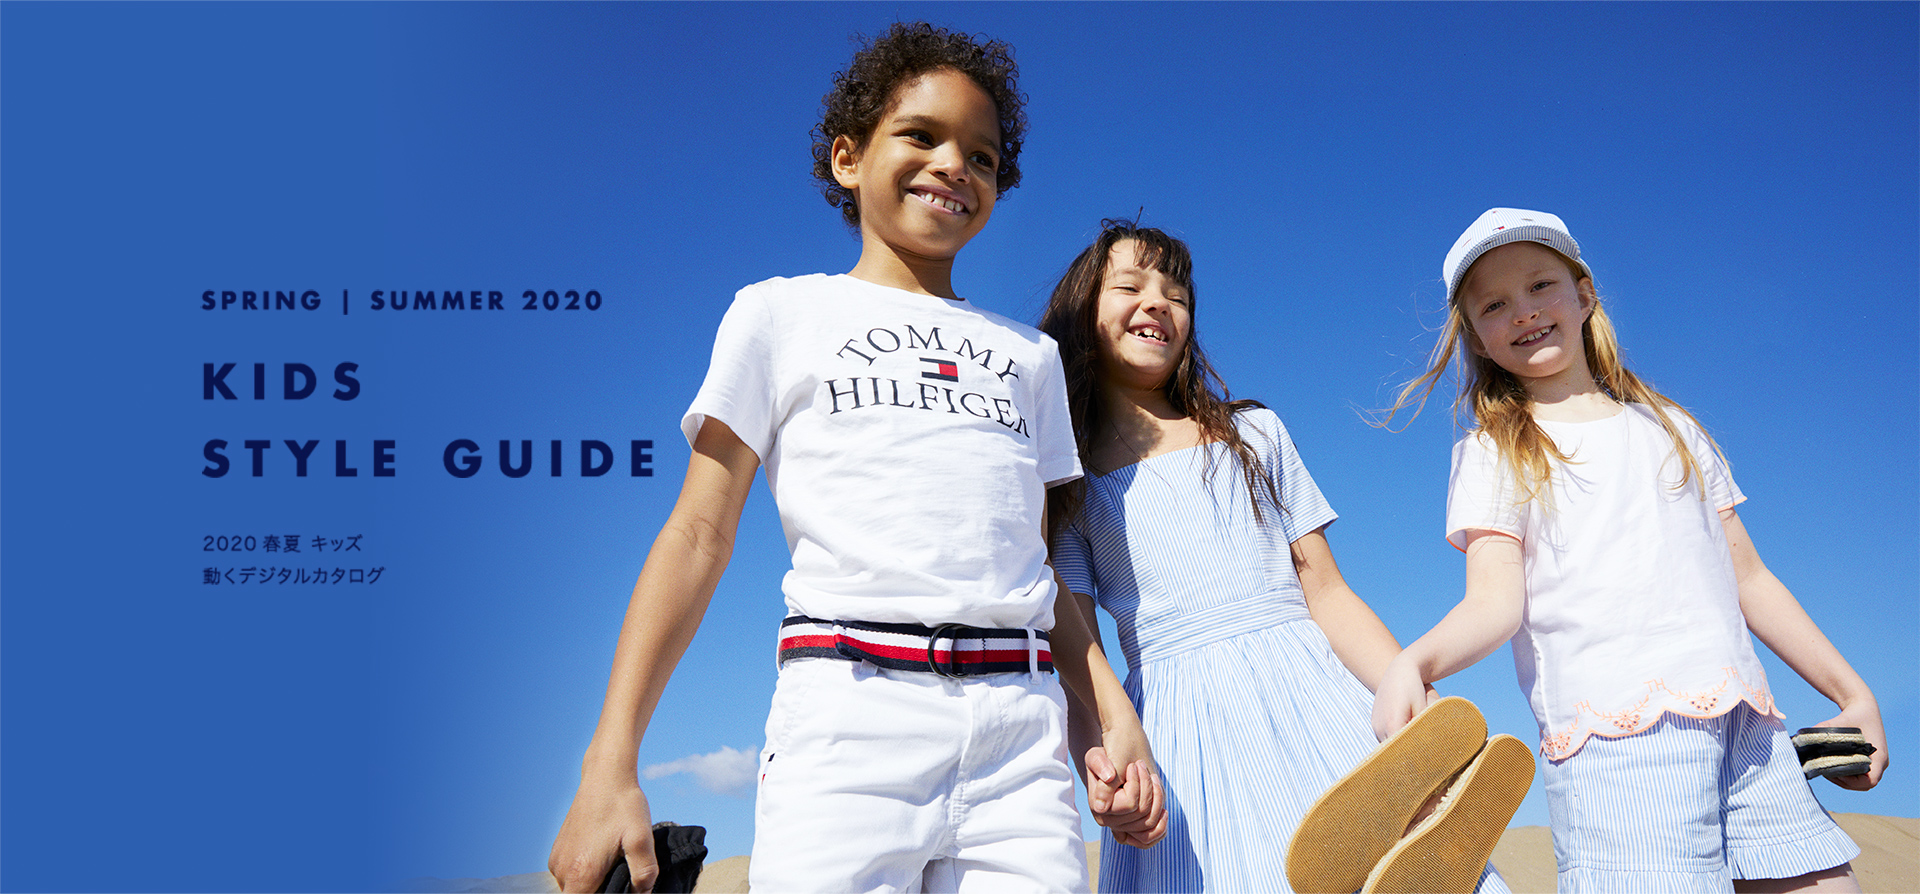 SPRING | SUMMER 2020 KIDS STYLE GUIDE